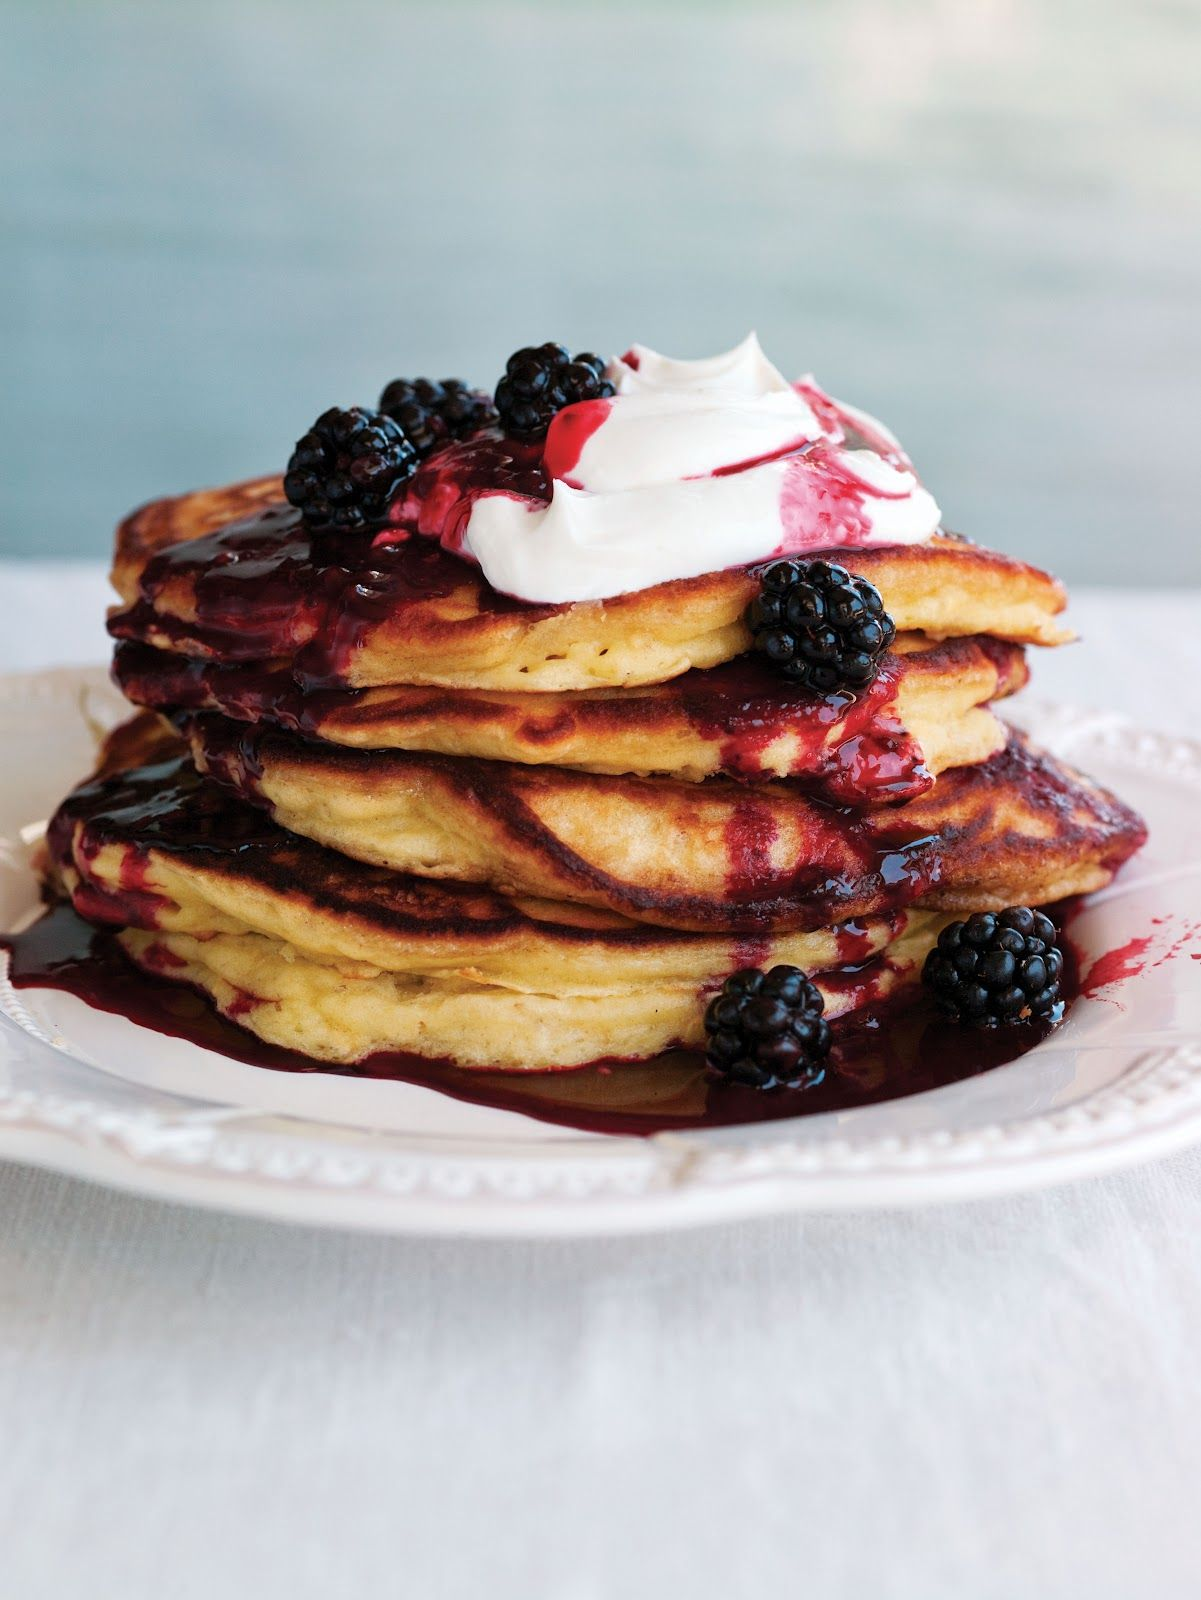 Oatmeal Yogurt Pancakes with Blackberry Compote